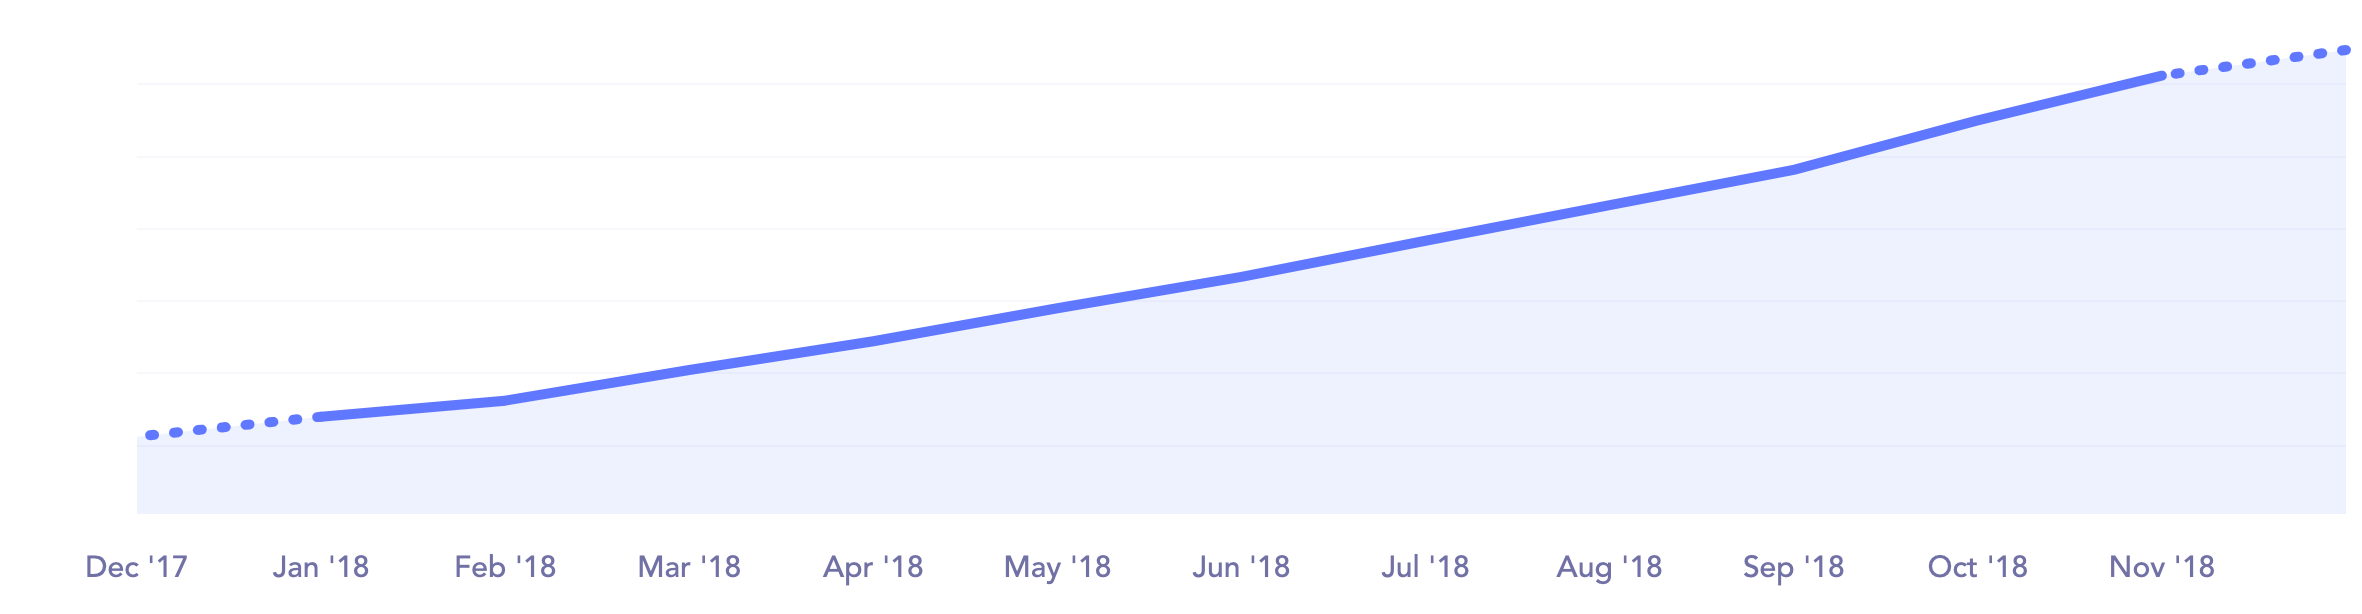 Active subscriptions (client growth rate)